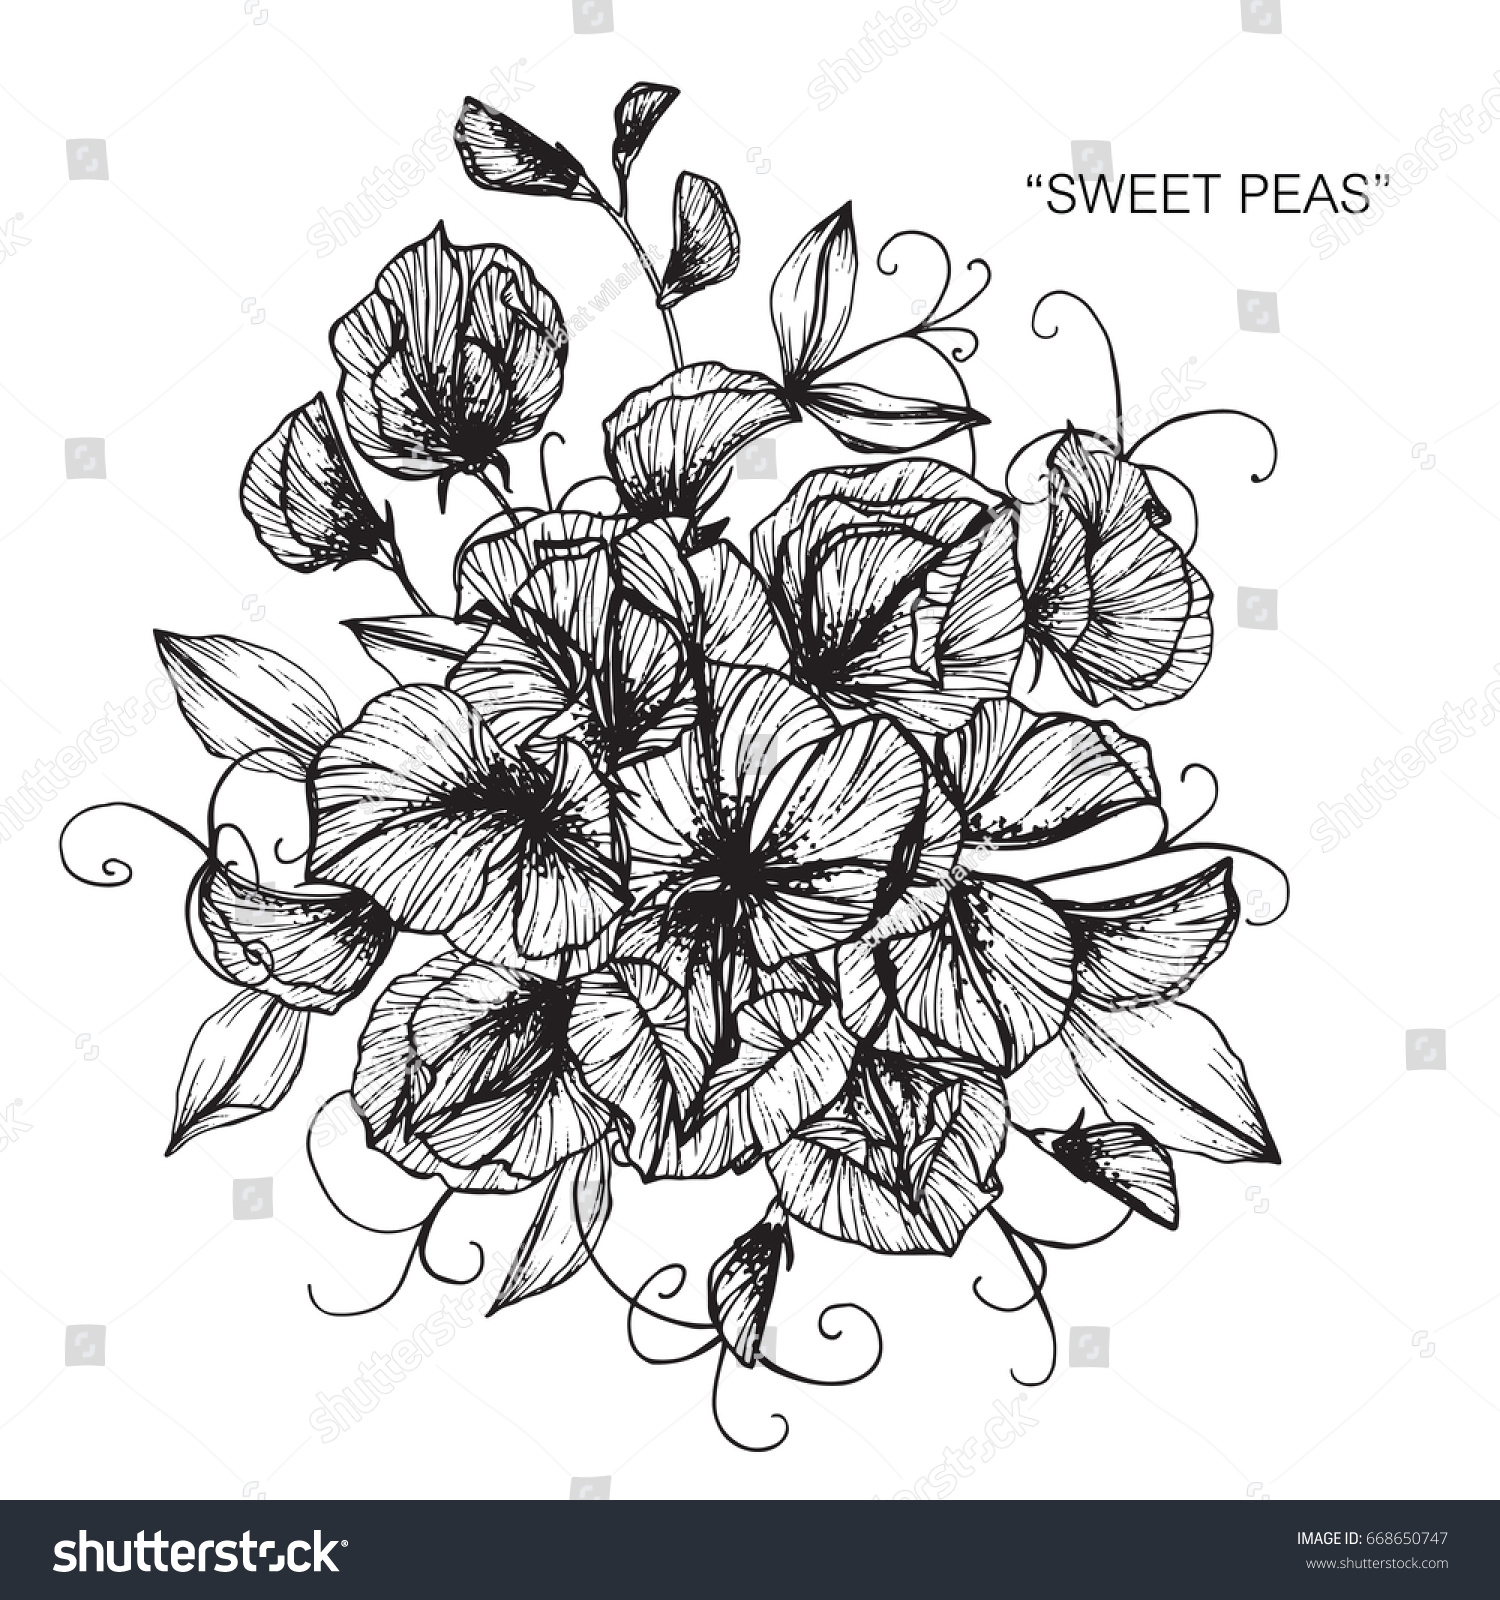 Bouquet sweet peas flowers drawing sketch stock vector royalty free bouquet of sweet peas flowers drawing and sketch with line art on white backgrounds izmirmasajfo